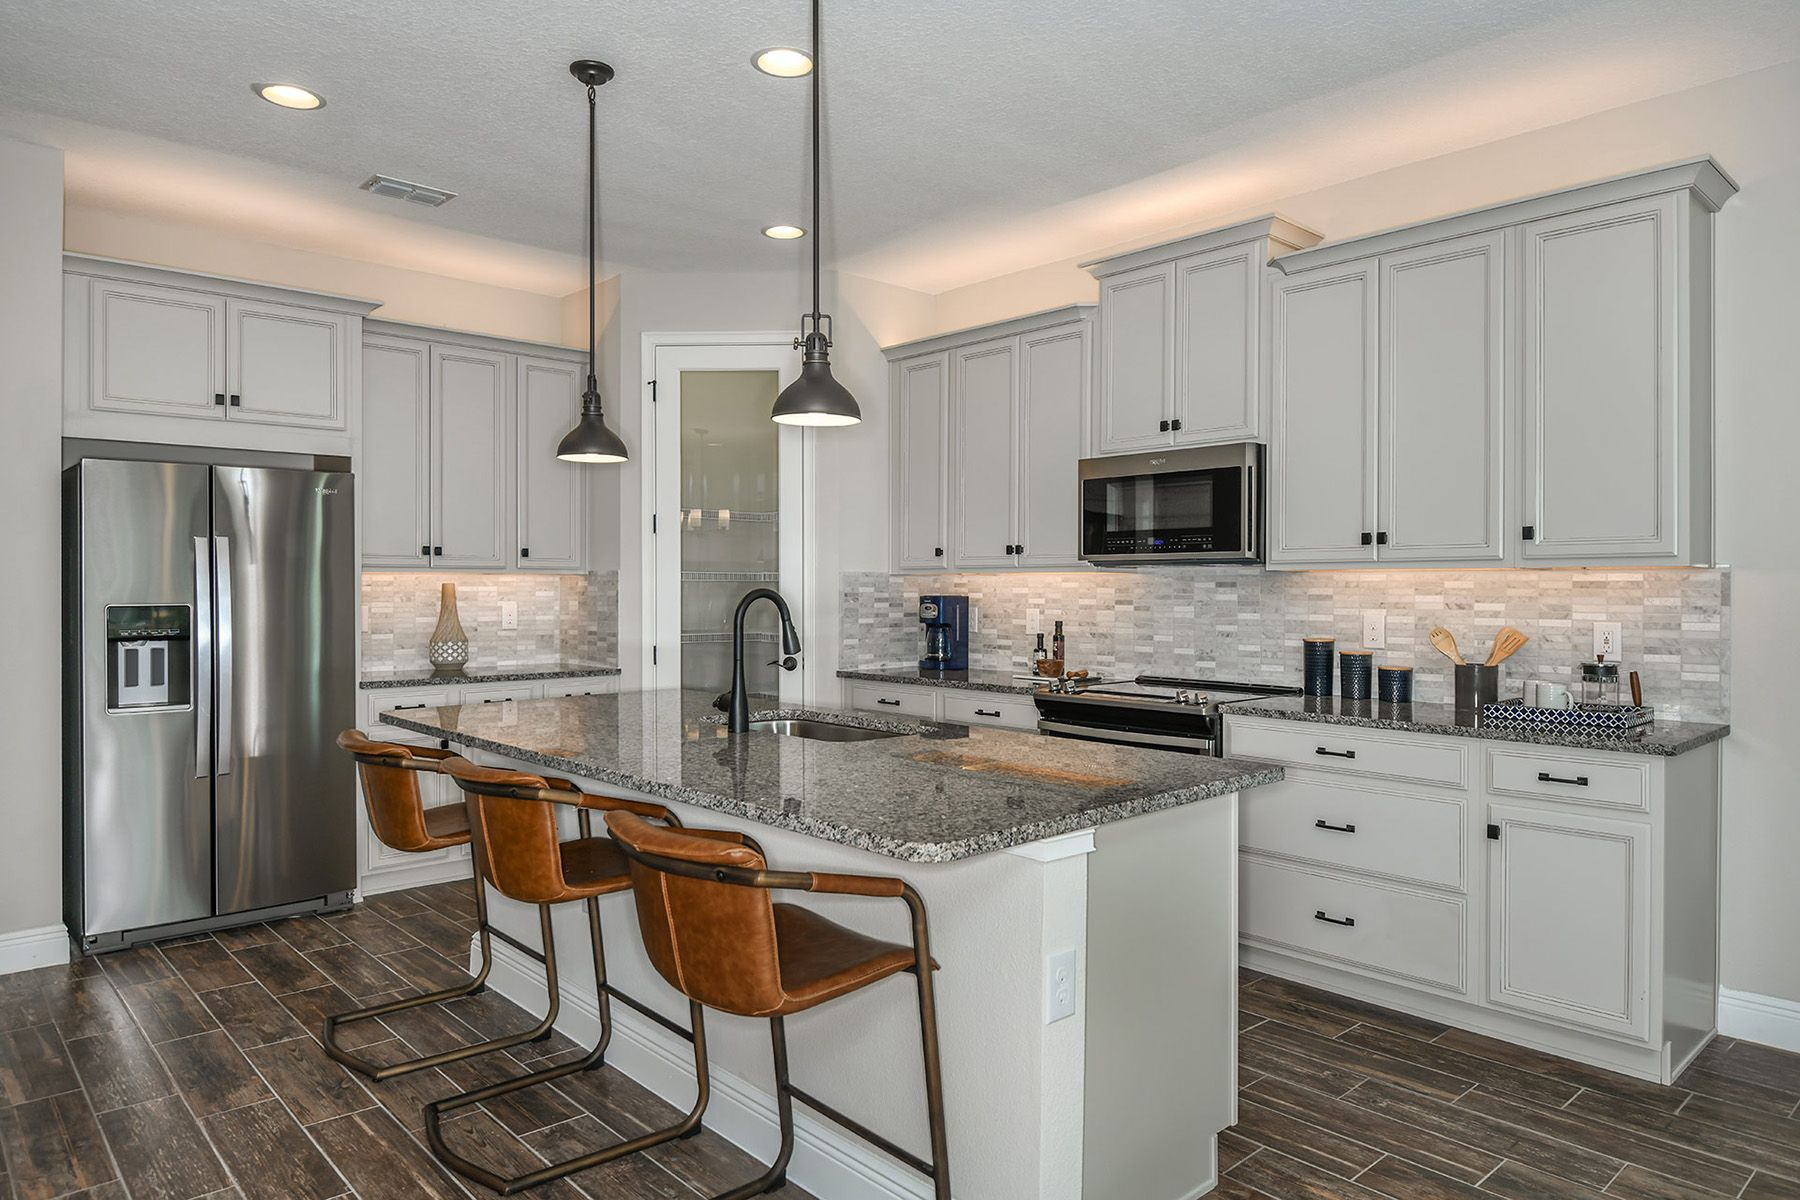 Kitchen featured in the Morningside By Mattamy Homes in Sarasota-Bradenton, FL